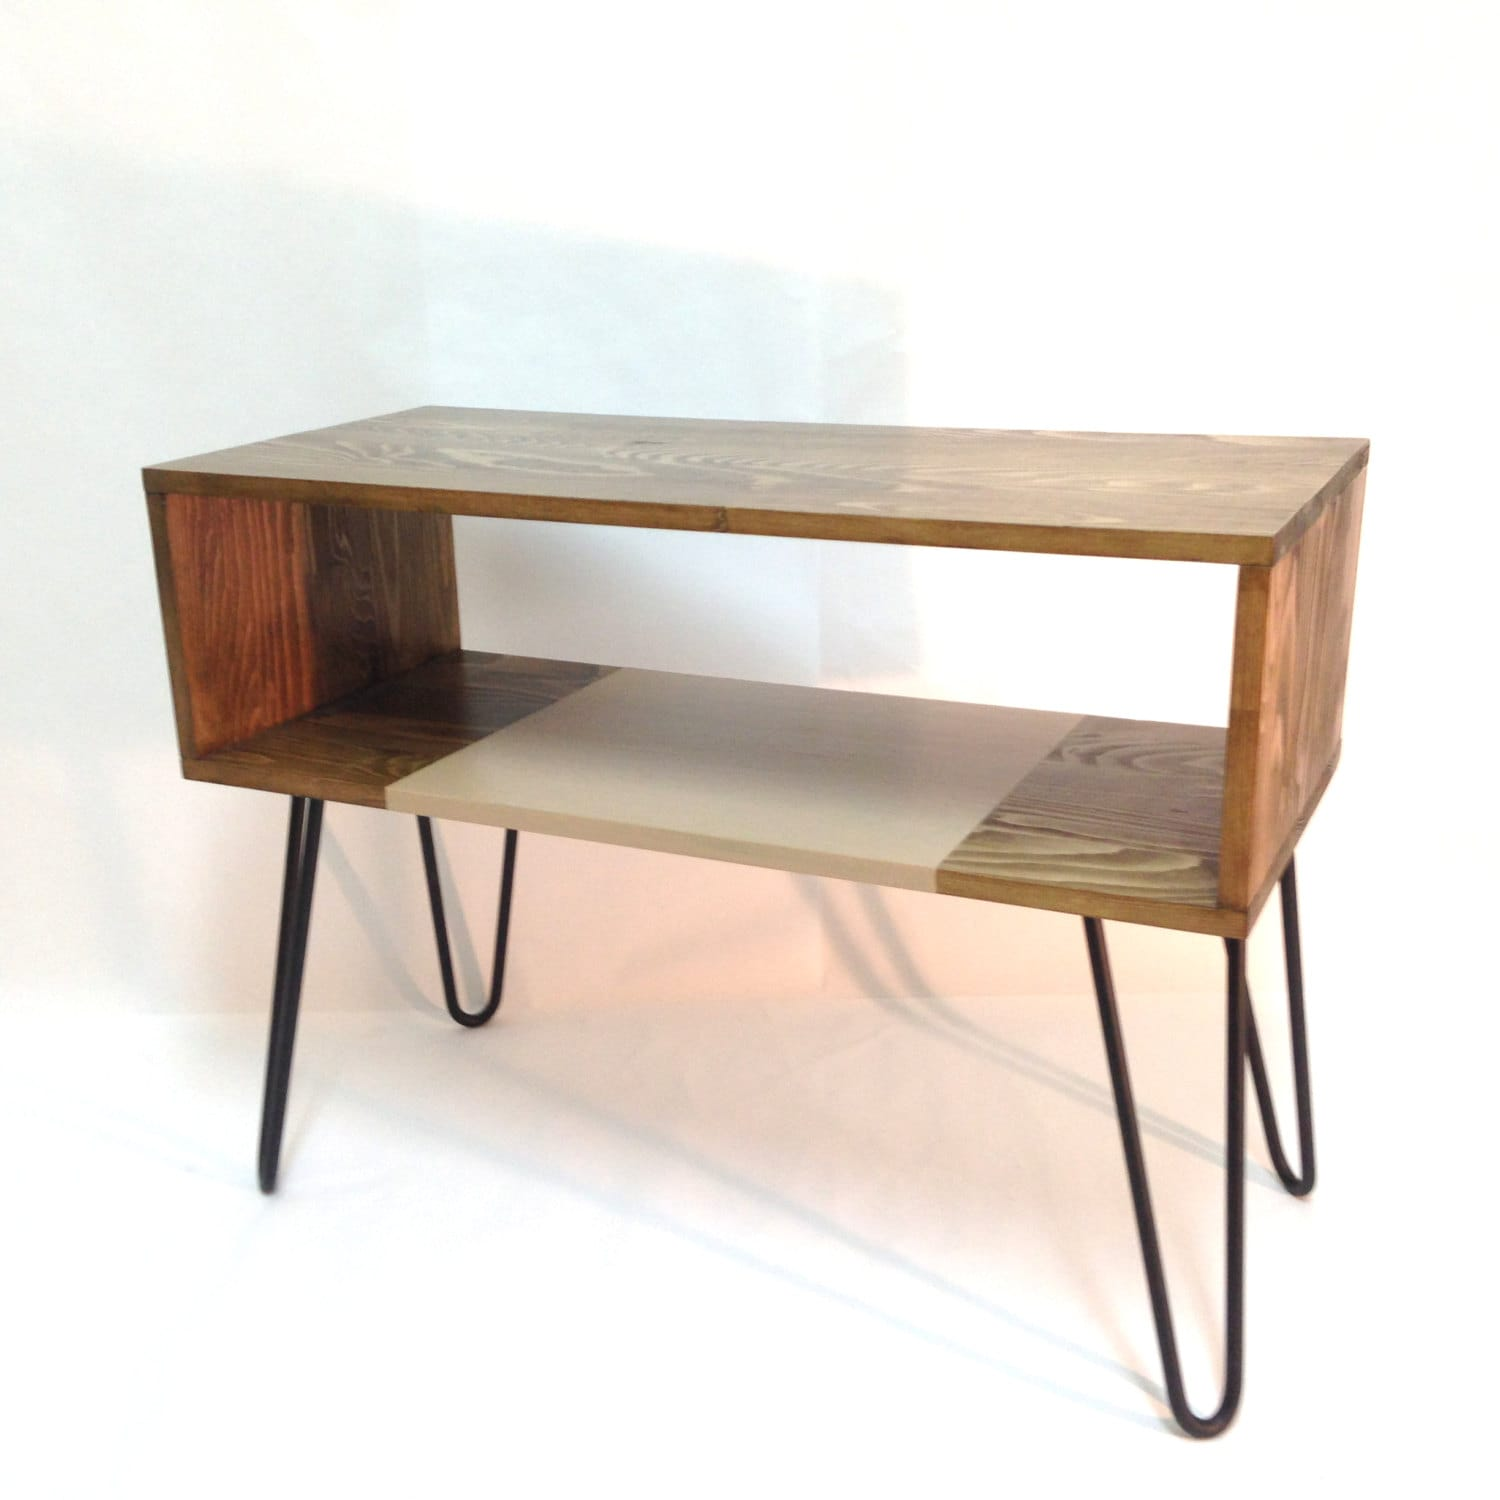 Hairpin Leg Desk Console Table Coffee Table Midcentury Modern